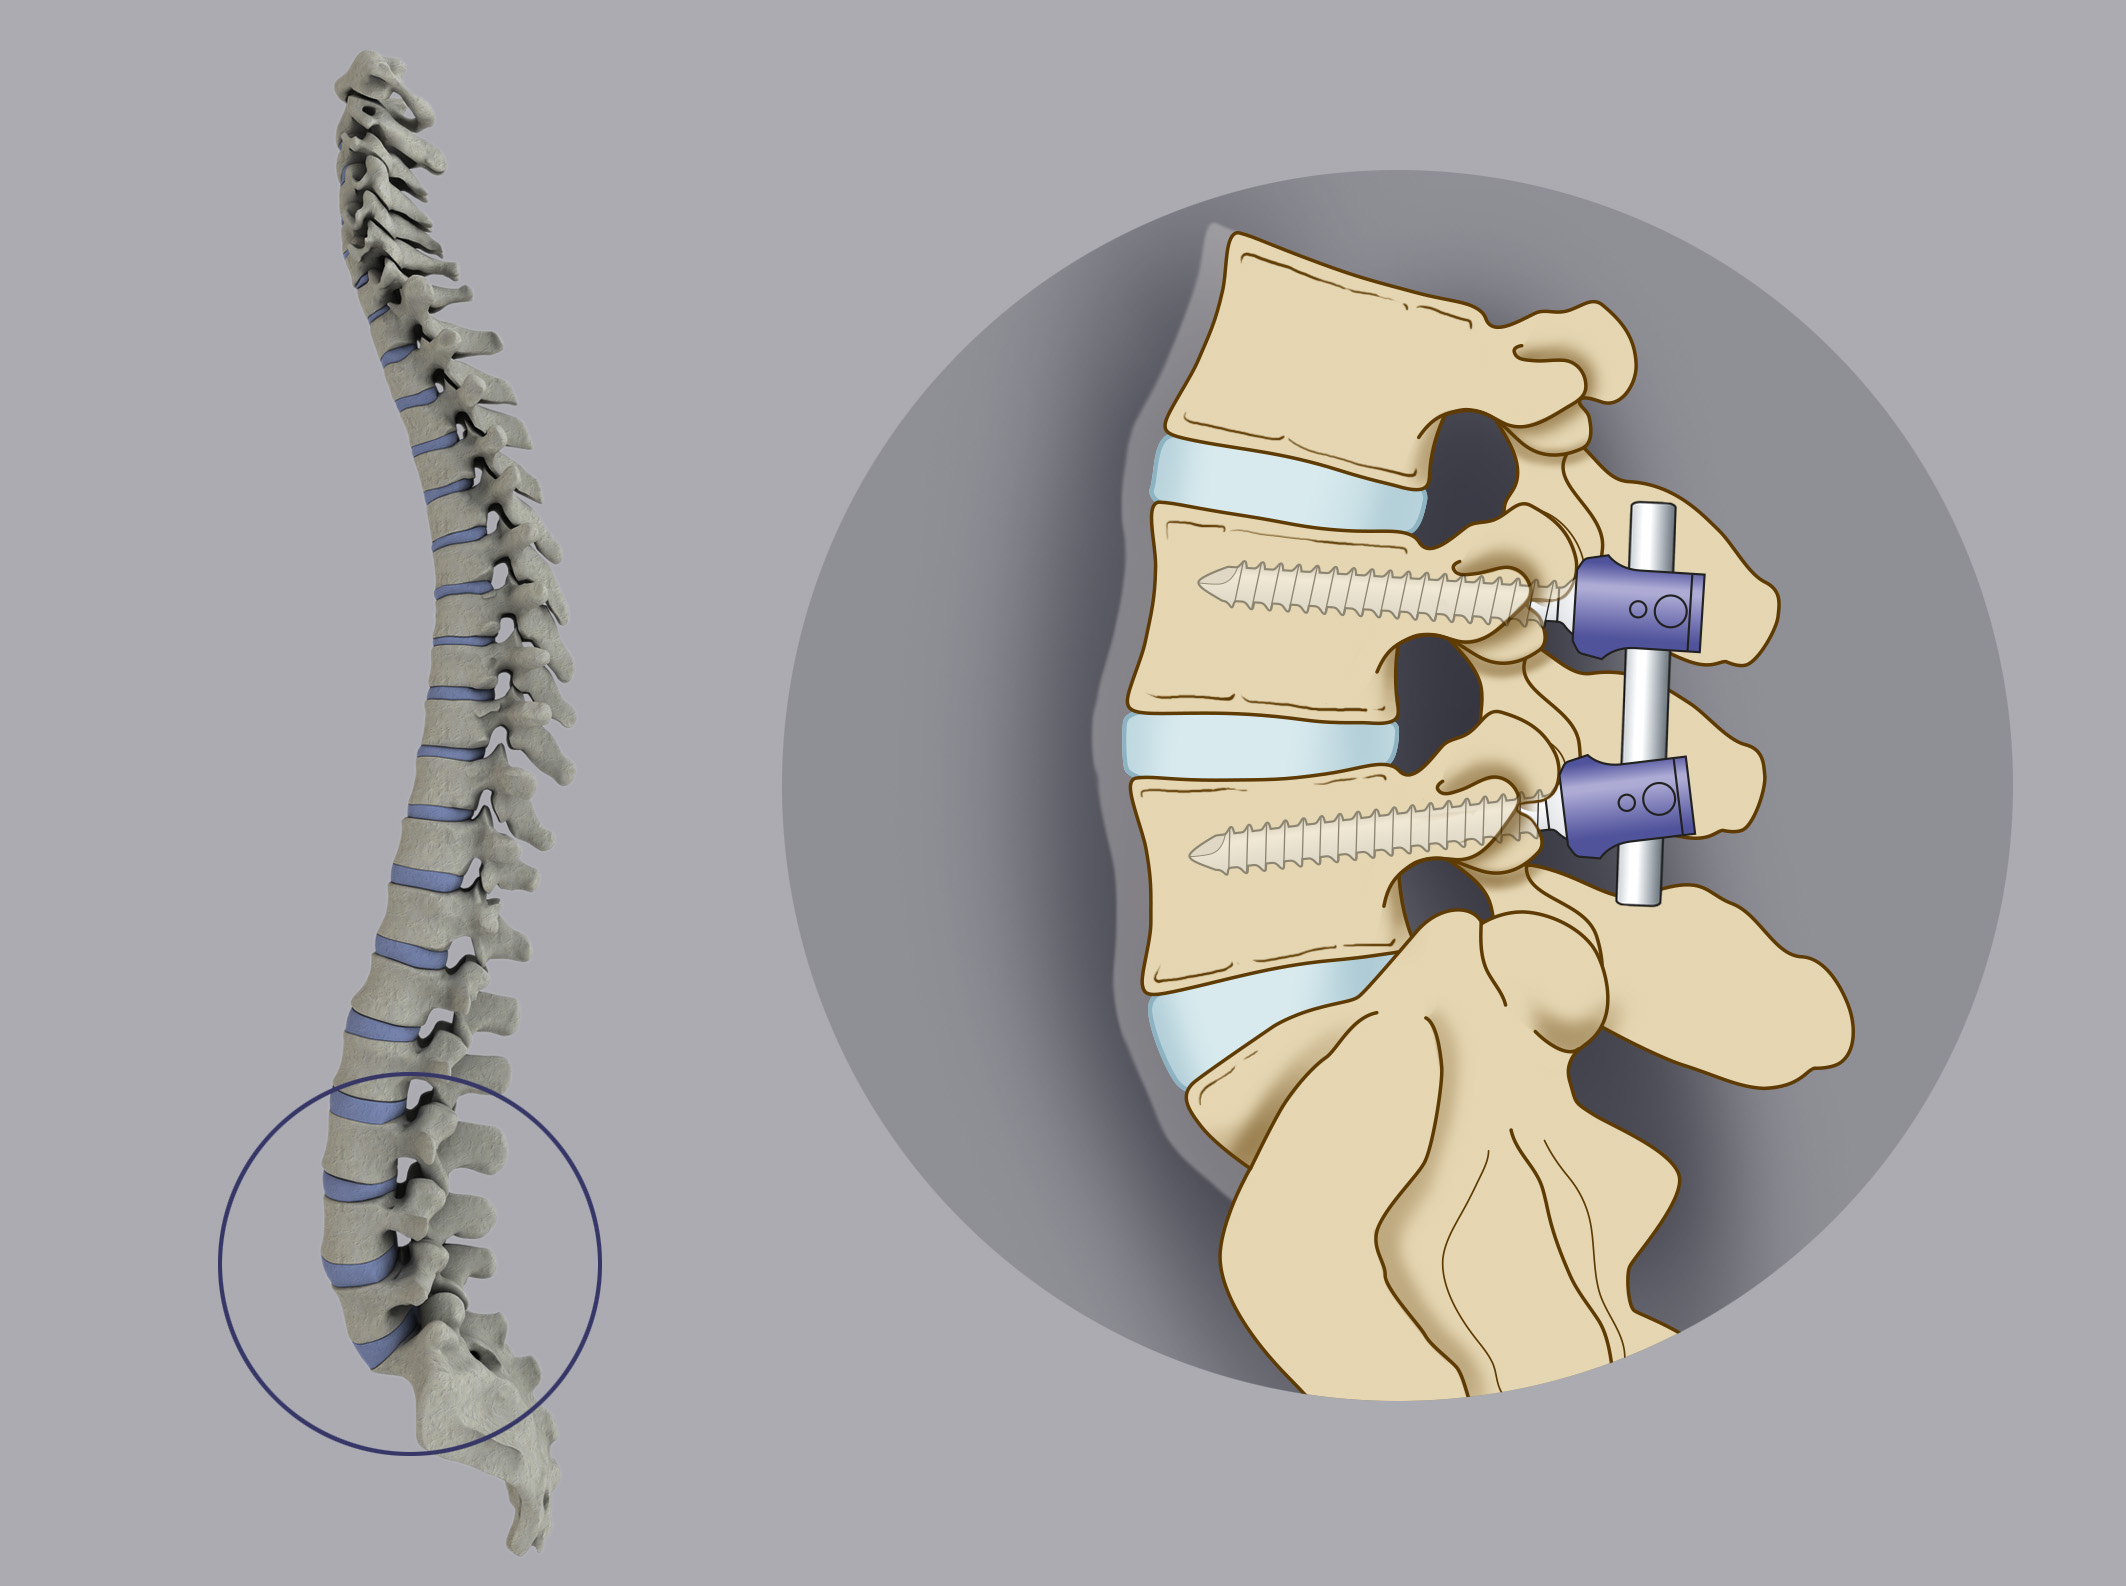 In case of severe instability, the surgical treatment consists in vertebral stabilization by means of  pedicolare screws, which are inserted into the vertebral body. The heads of the pedicular screws are  connected to each other by titanium bars.